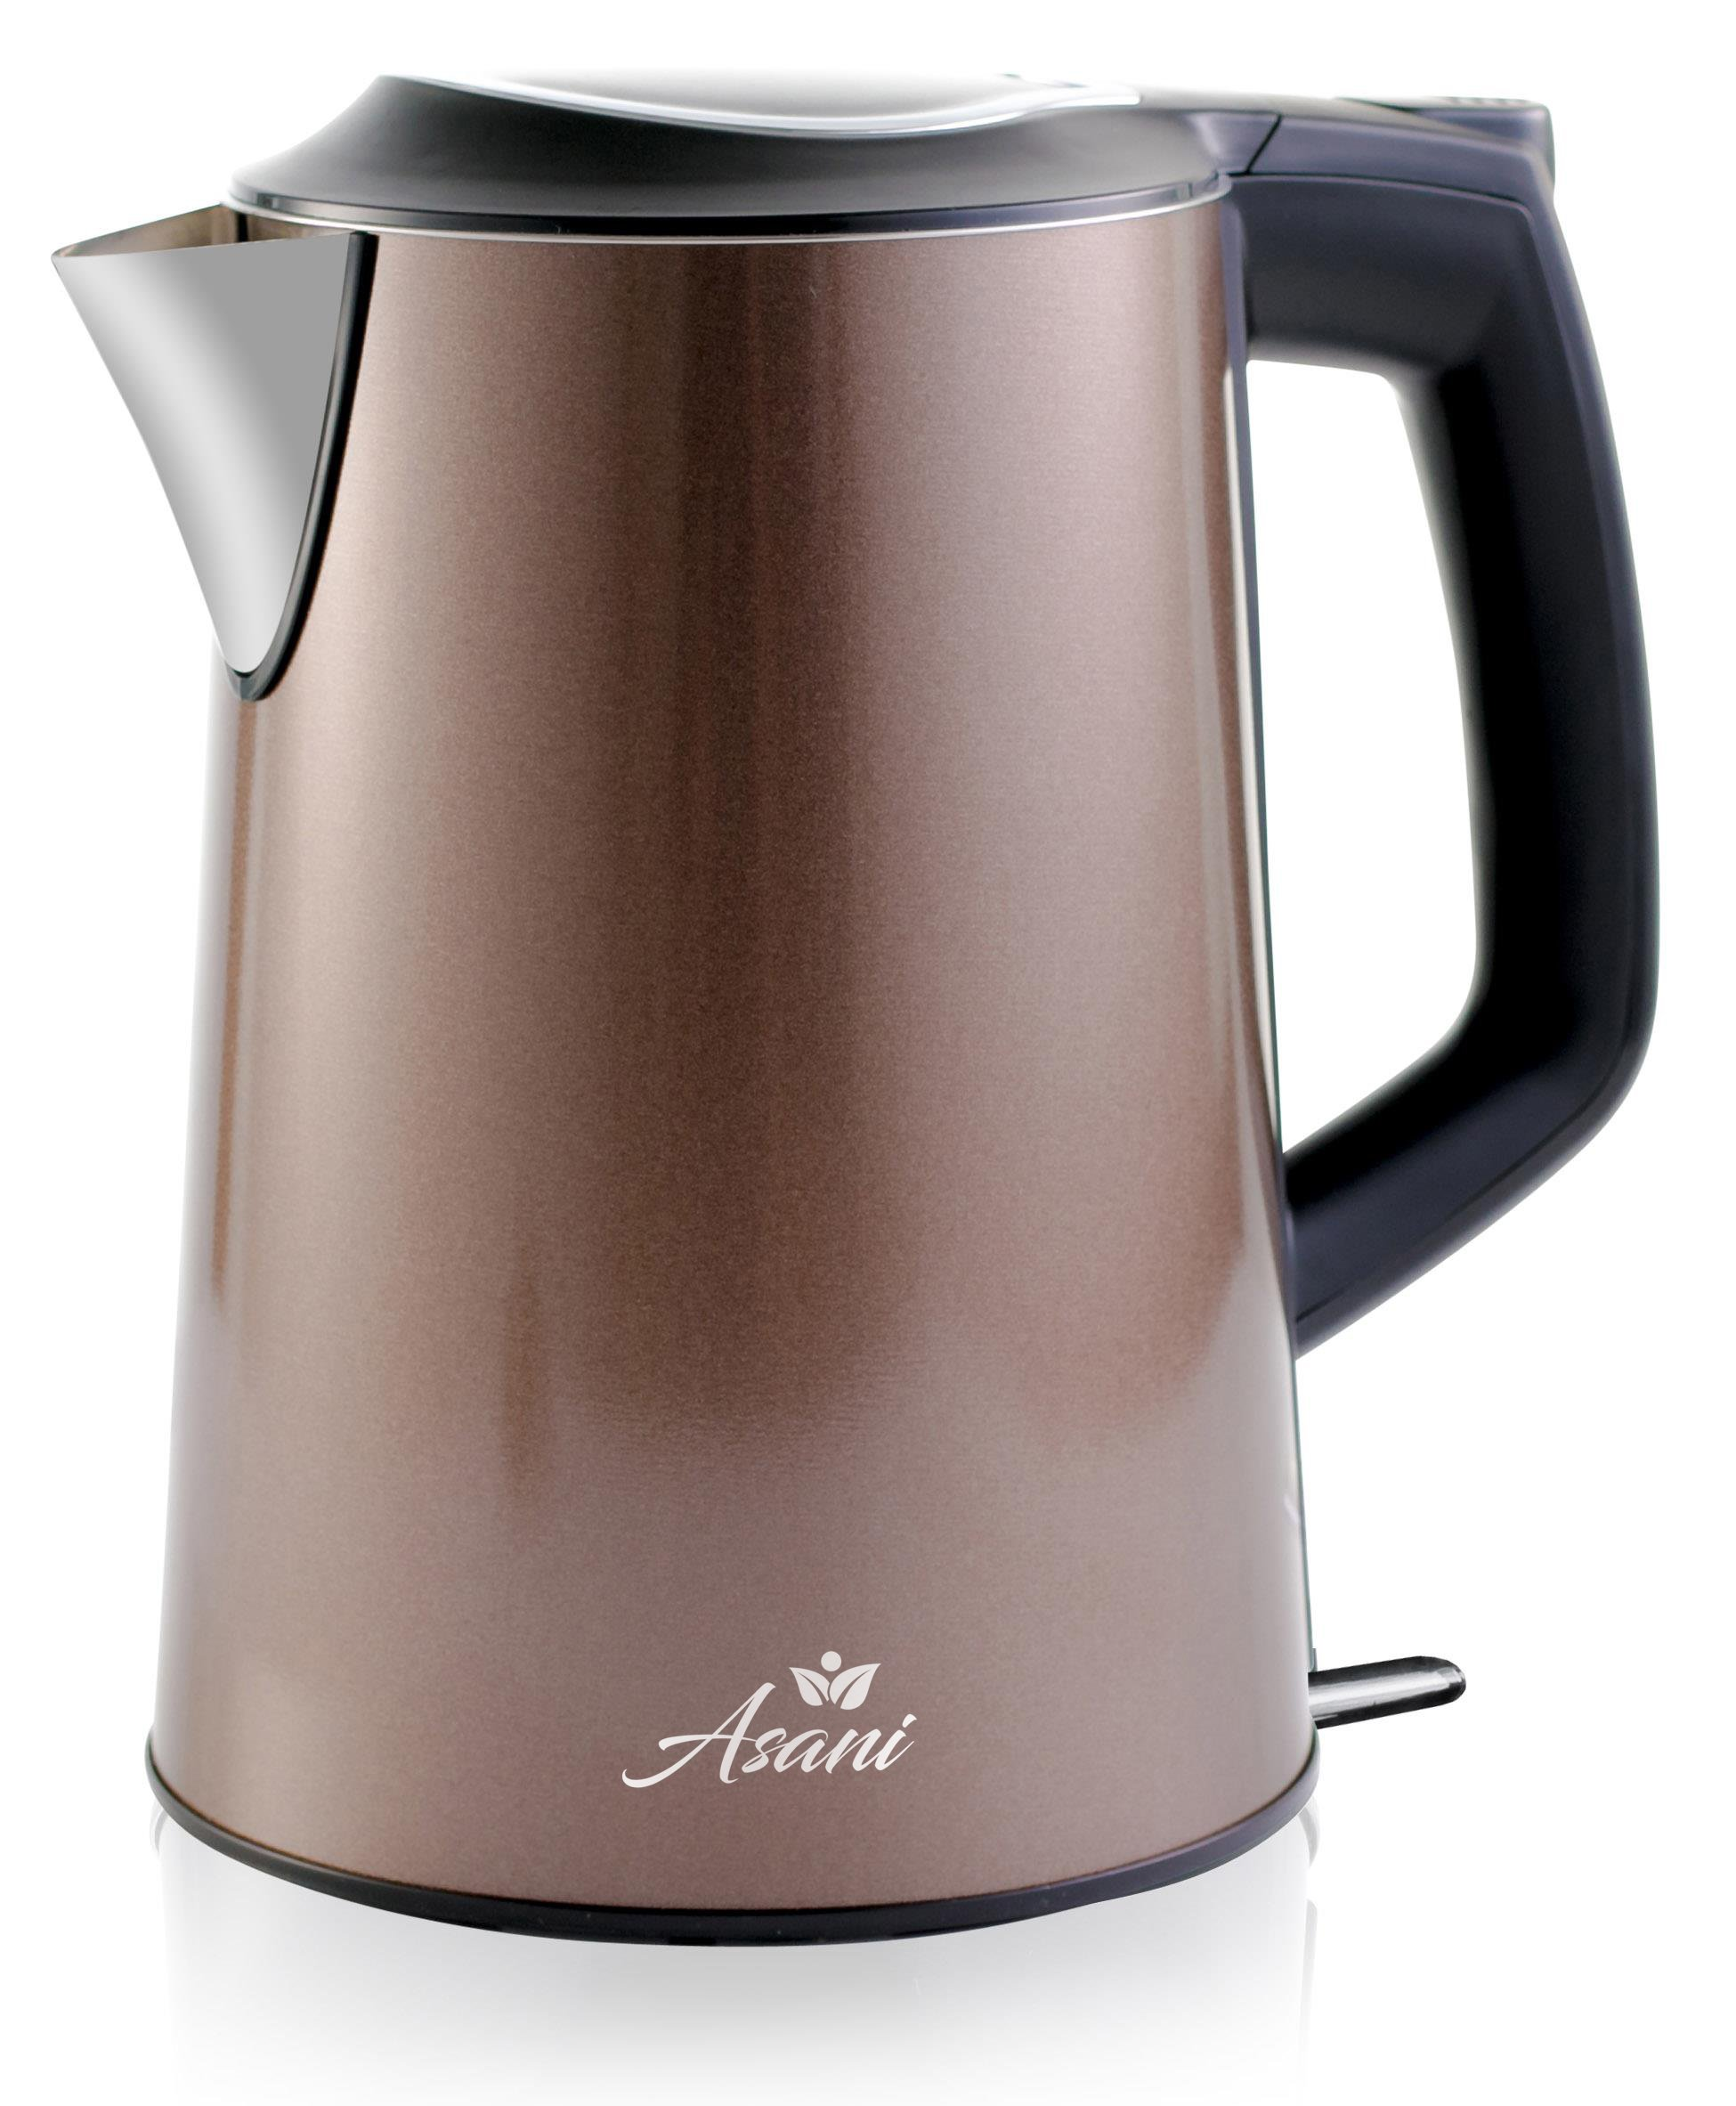 Double Wall Safe Touch Electric Kettle | Stainless Steel with 100% Plastic-Free Interior | Cordless Electronic Hot Water Heater Pot with Cool Touch, Boil Dry Protection & More(1.9Qrt/1.8L)(Grey) by Asani